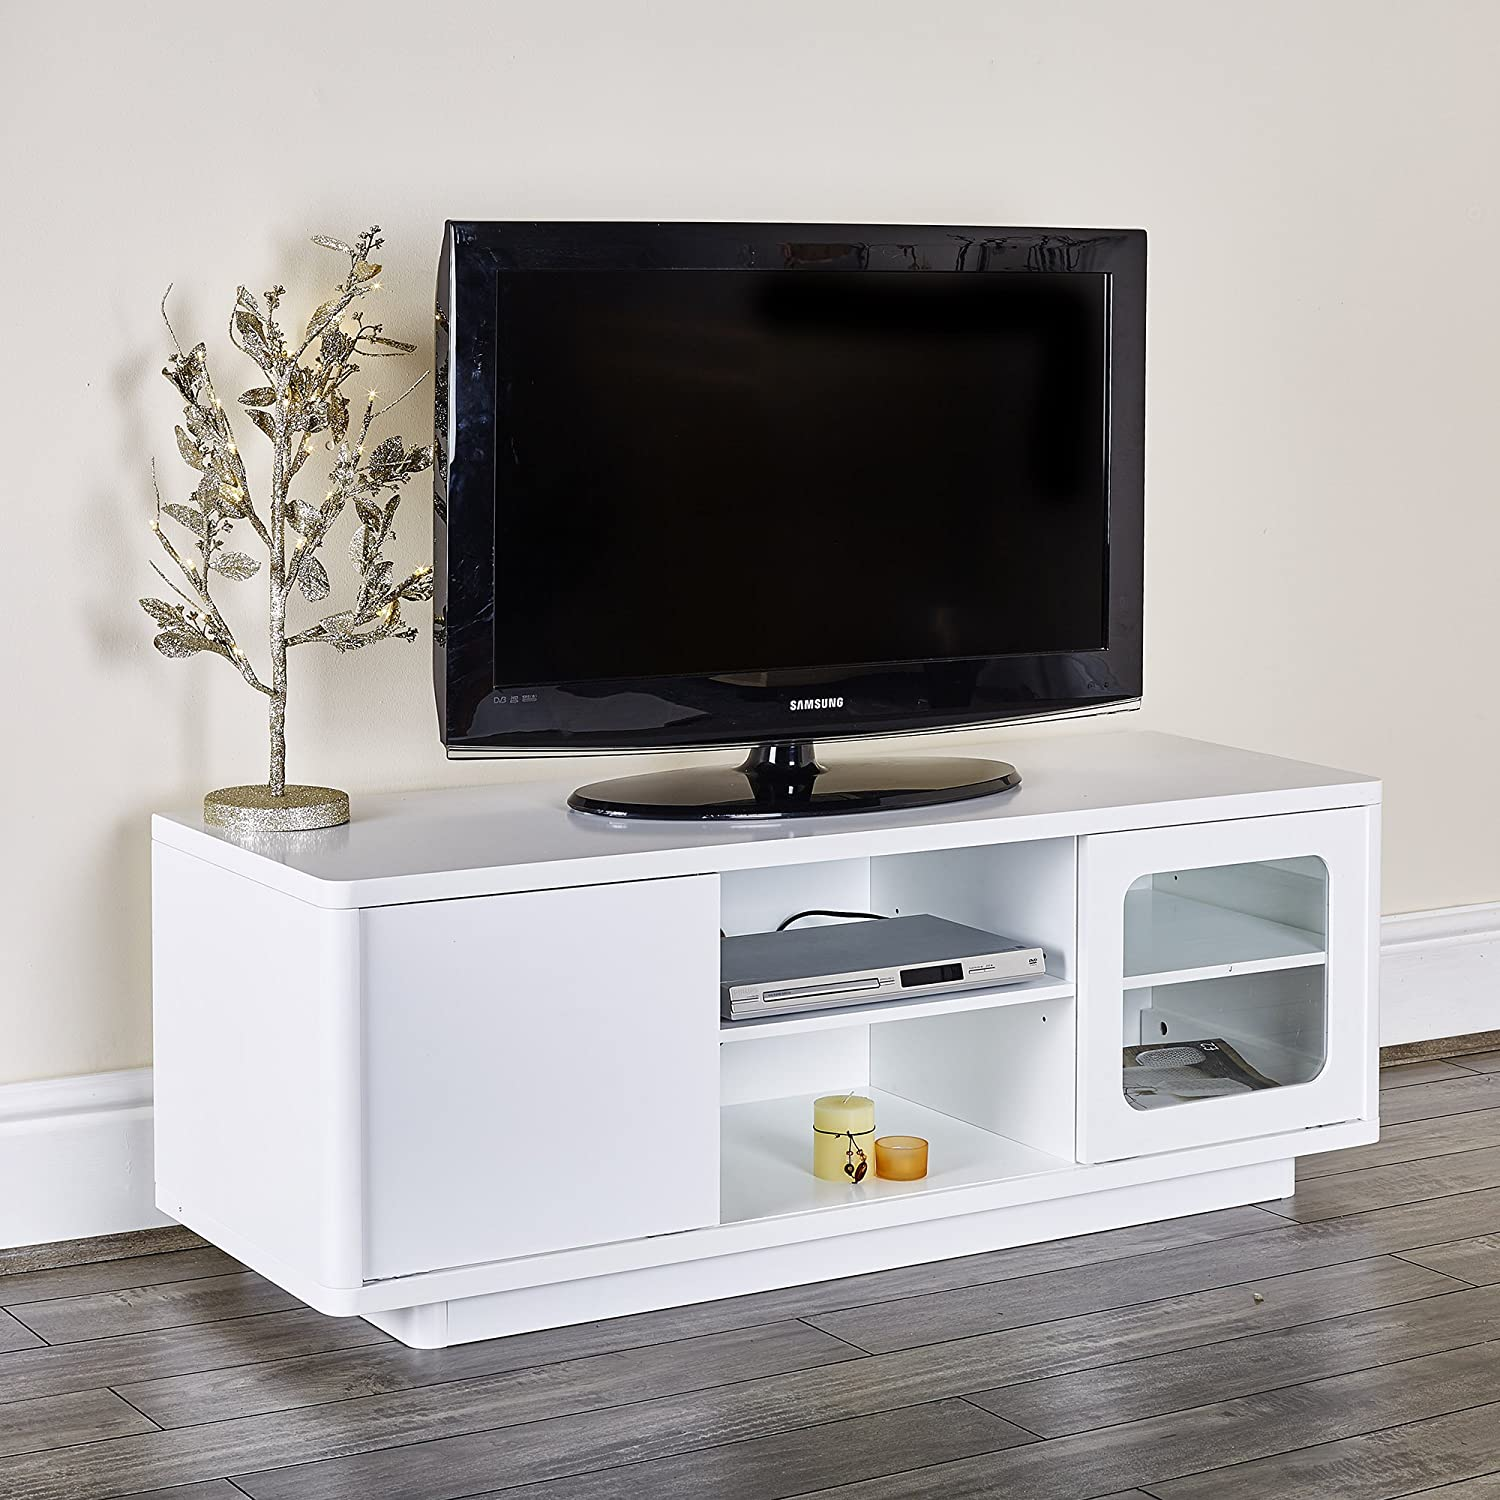 Abreo TV Unit Cabinet Entertainment Stand with Shelves Sliding ...